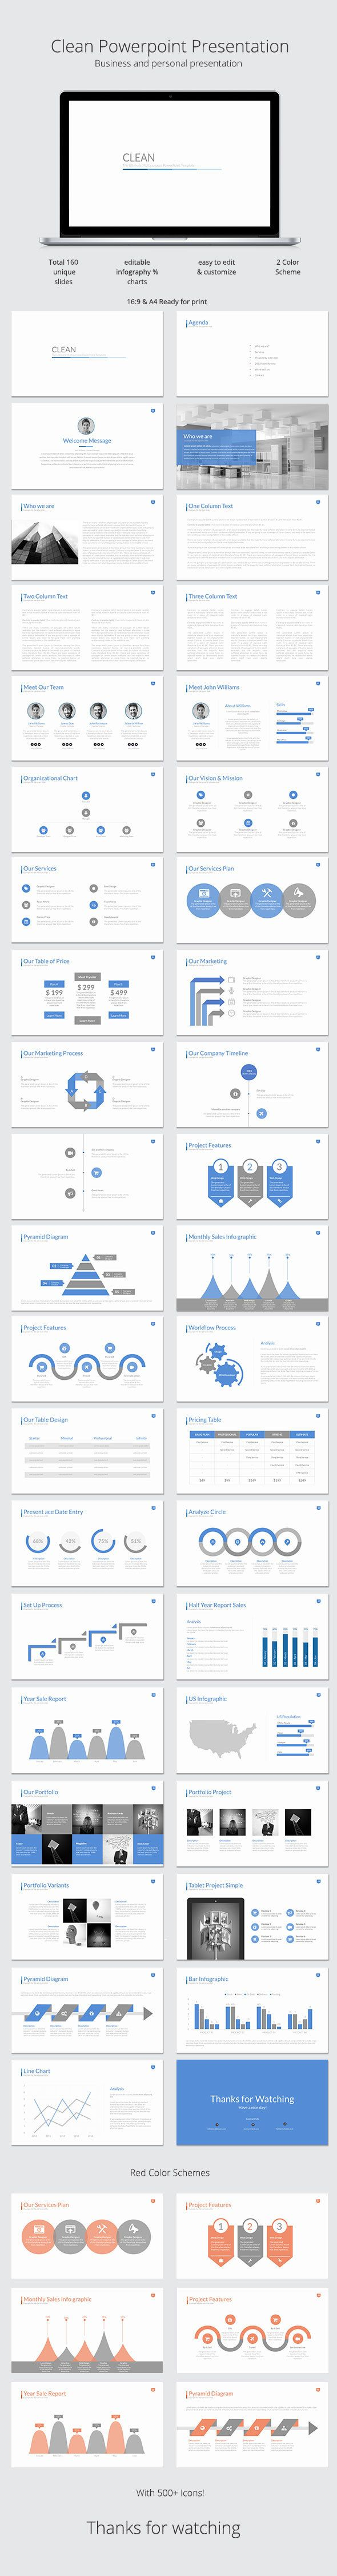 Coolmathgamesus  Unique  Ideas About Powerpoint Presentations On Pinterest With Fetching Clean Powerpoint Template With Cool Powerpoint Test Questions Also Tips For Good Powerpoint Presentations In Addition Purple Powerpoint Backgrounds And Water Properties Powerpoint As Well As Presenting Powerpoint Additionally Free Powerpoint Templates For Download From Pinterestcom With Coolmathgamesus  Fetching  Ideas About Powerpoint Presentations On Pinterest With Cool Clean Powerpoint Template And Unique Powerpoint Test Questions Also Tips For Good Powerpoint Presentations In Addition Purple Powerpoint Backgrounds From Pinterestcom